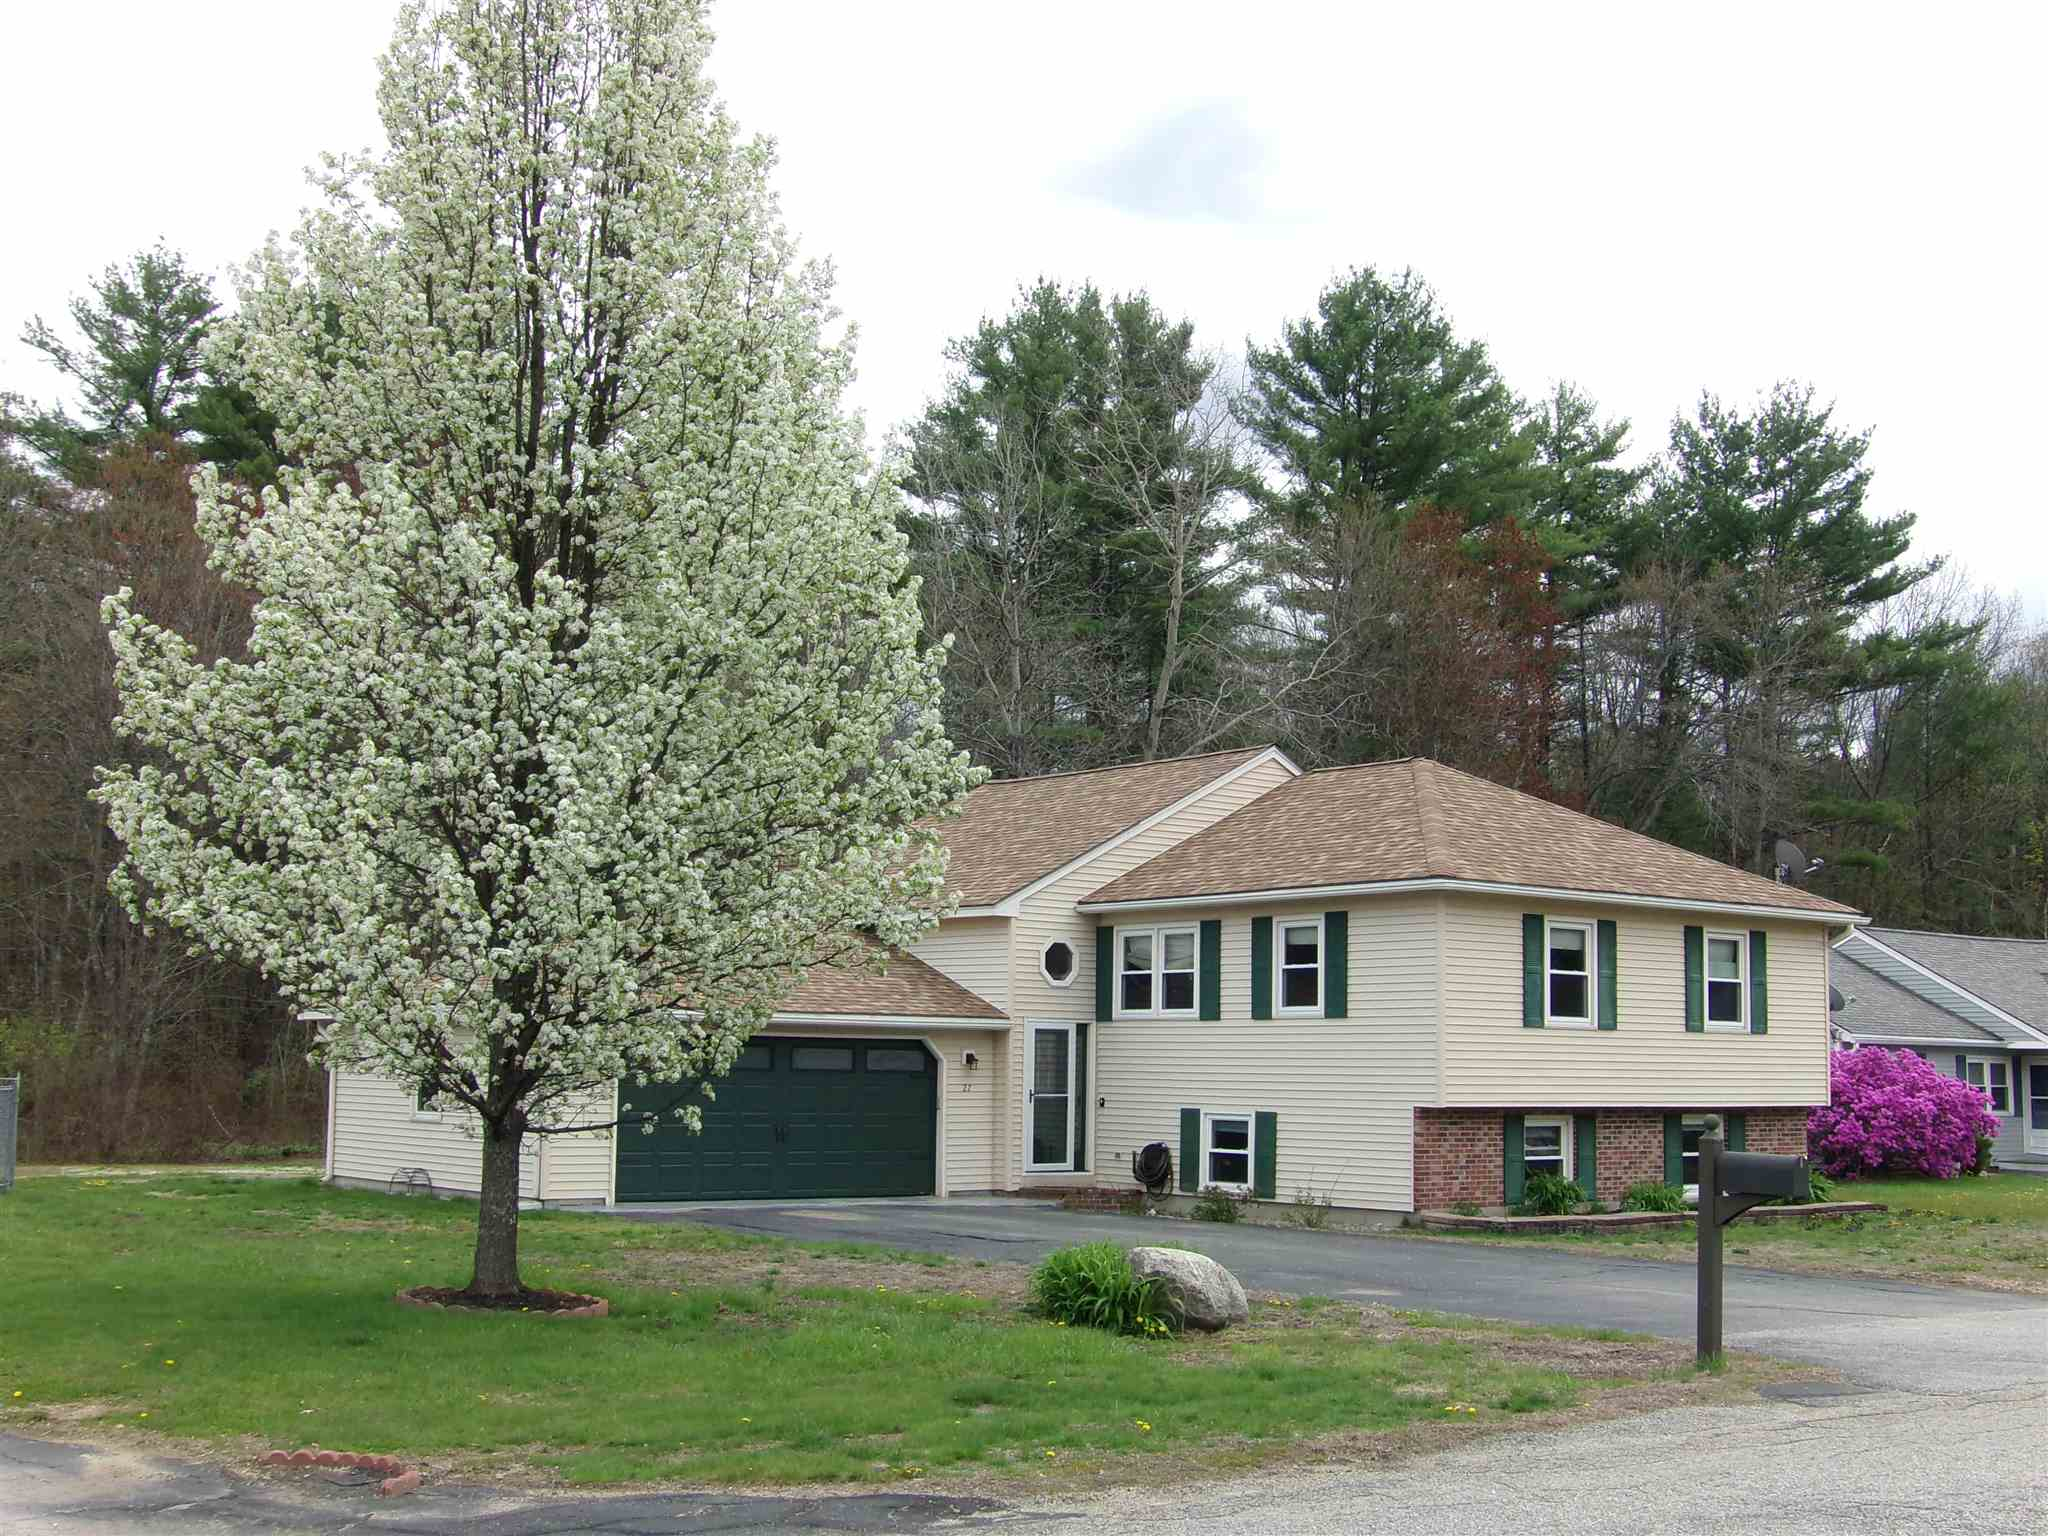 Photo of 27 Leigh Court Laconia NH 03246